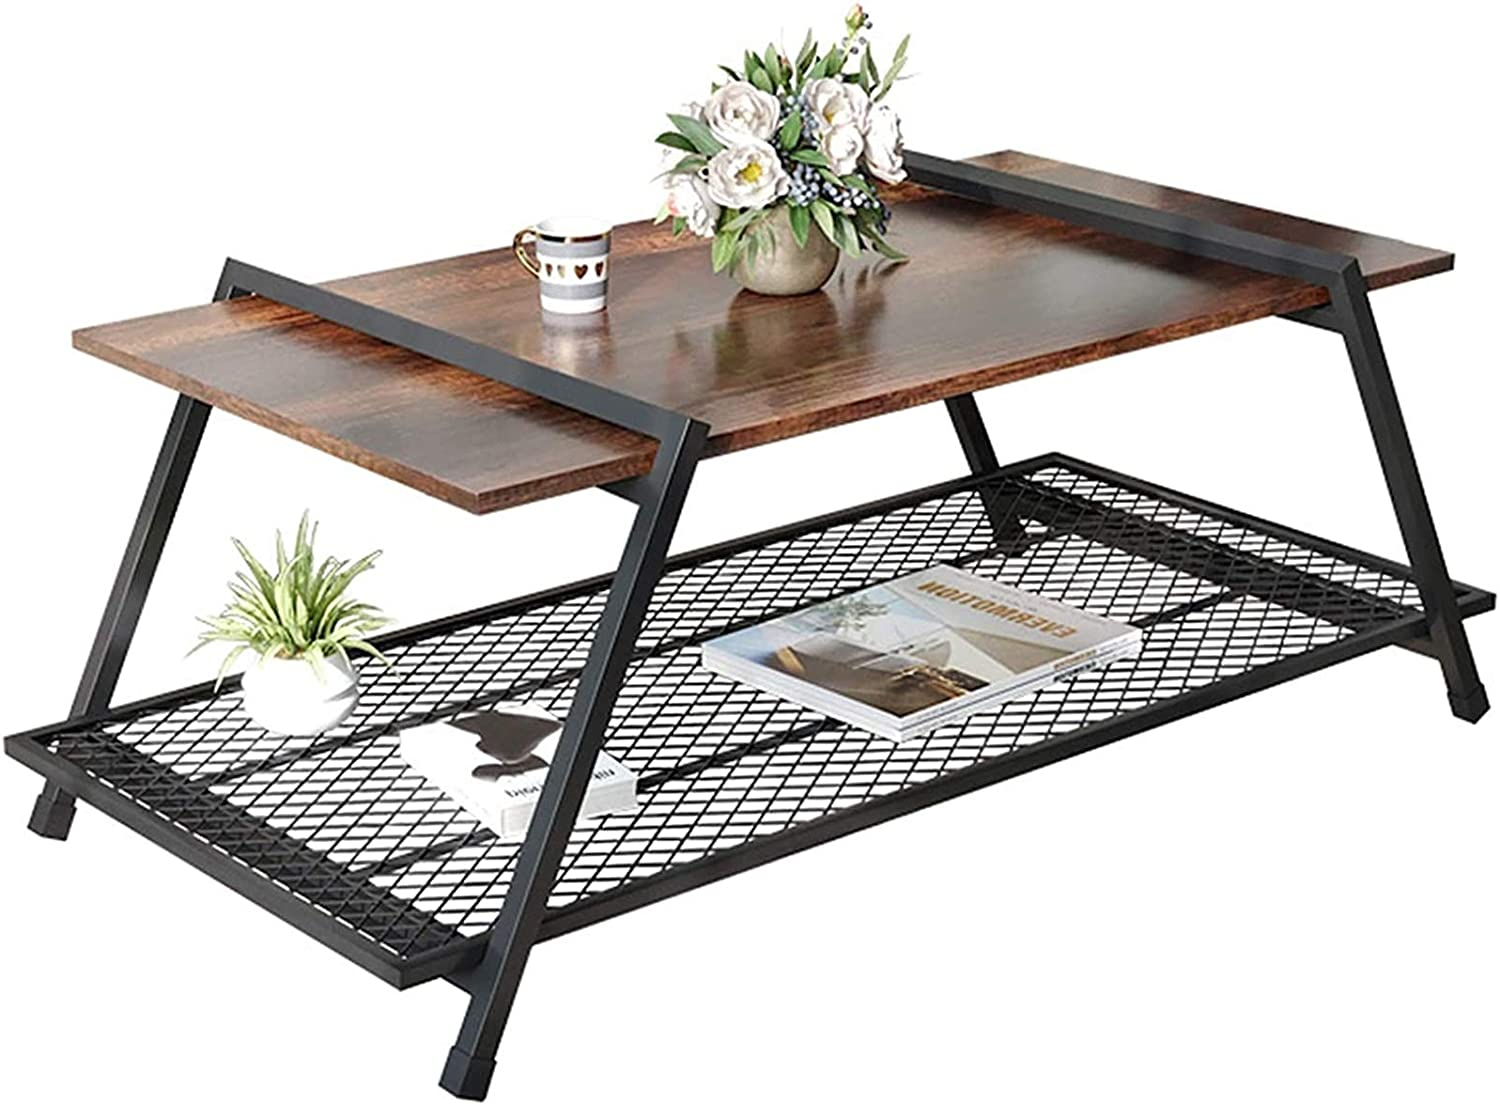 RSBCSHI Industrial Coffee Table, with Storage Shelf for Living Room Wood Look Accent Furniture Large Storage Space, Easy Assembly, Rustic Brown